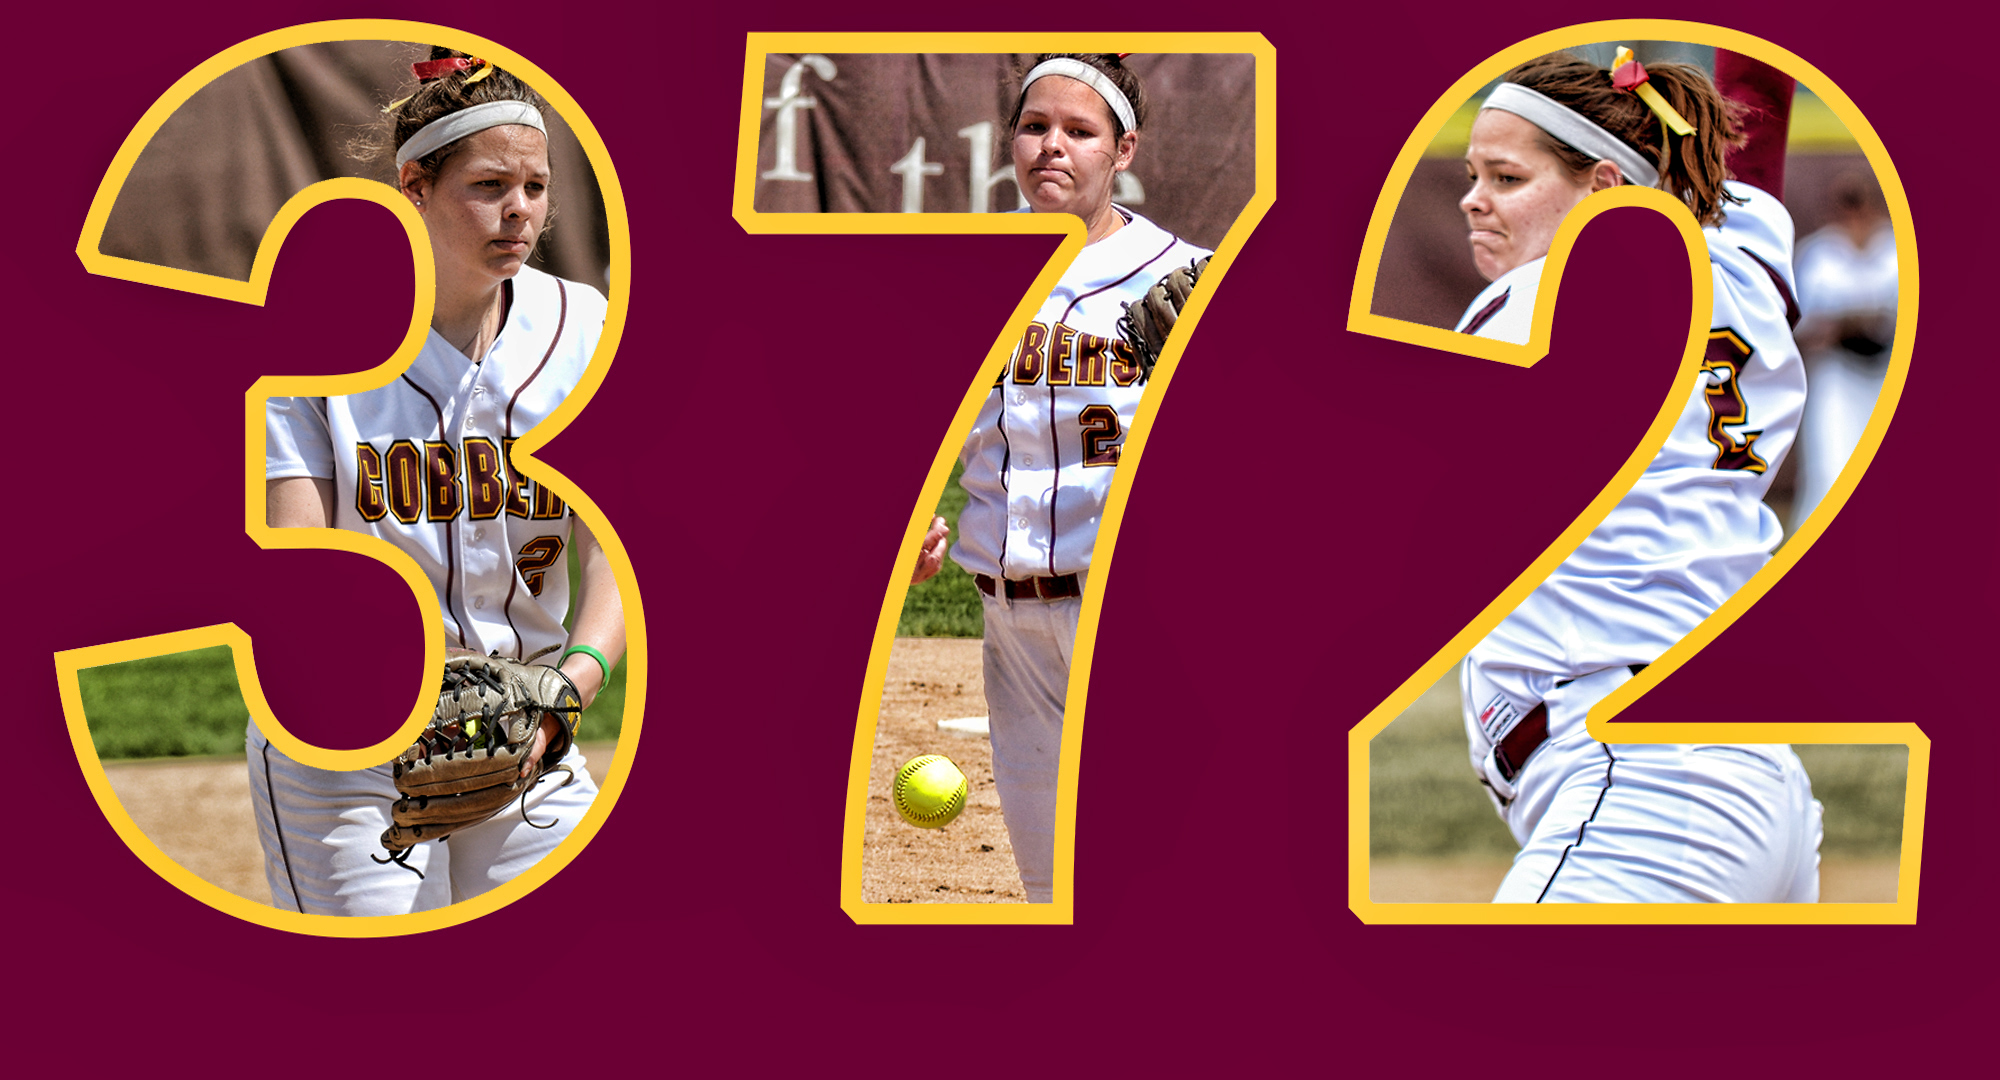 Abby Haraldson struck out her 372nd hitter to become the school's all-time strikeout leader.